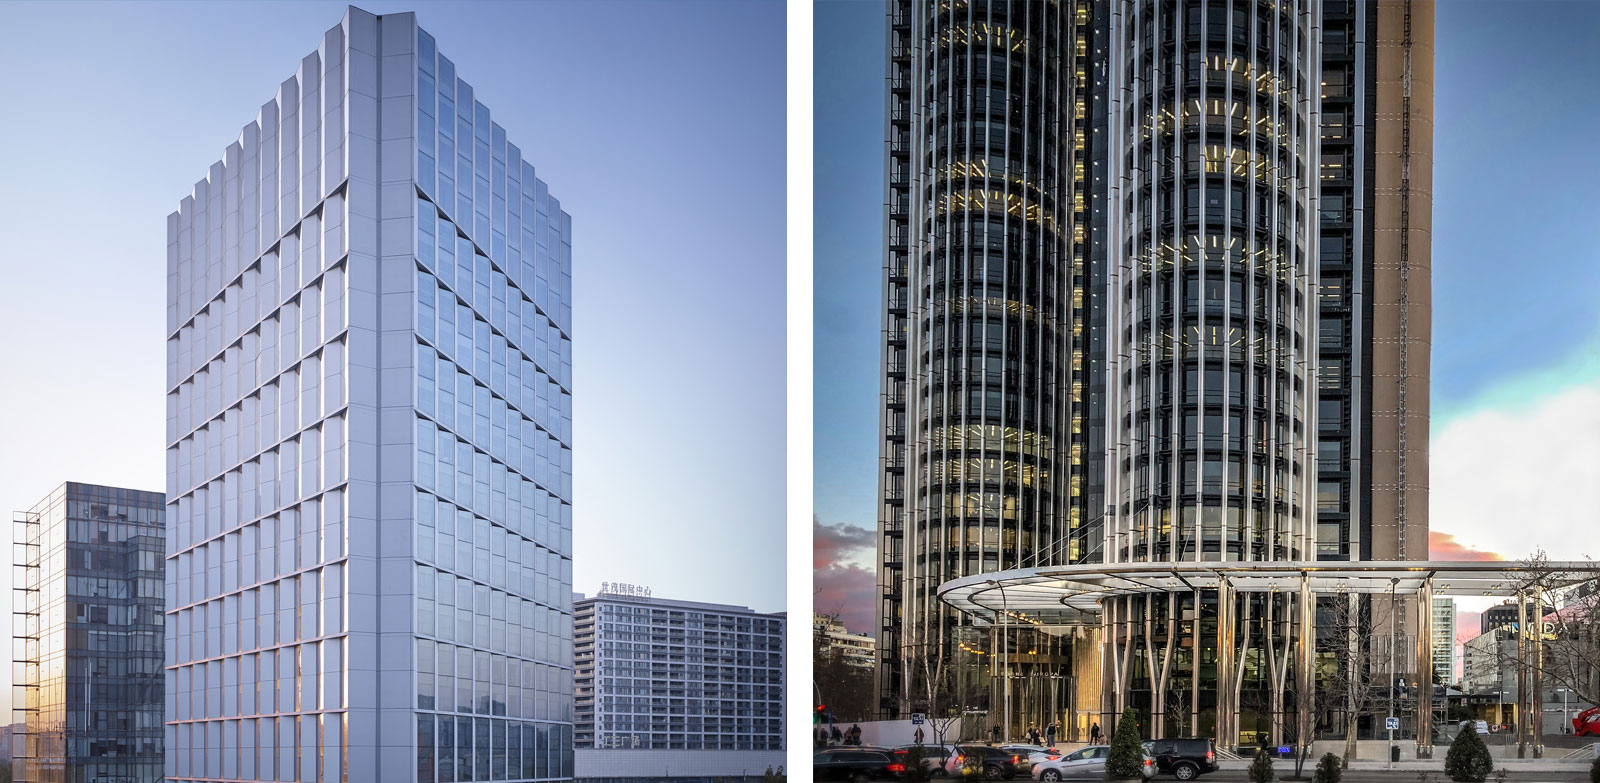 CHAO Hotel - Beijing (left), Torre Europa - Madrid (right).